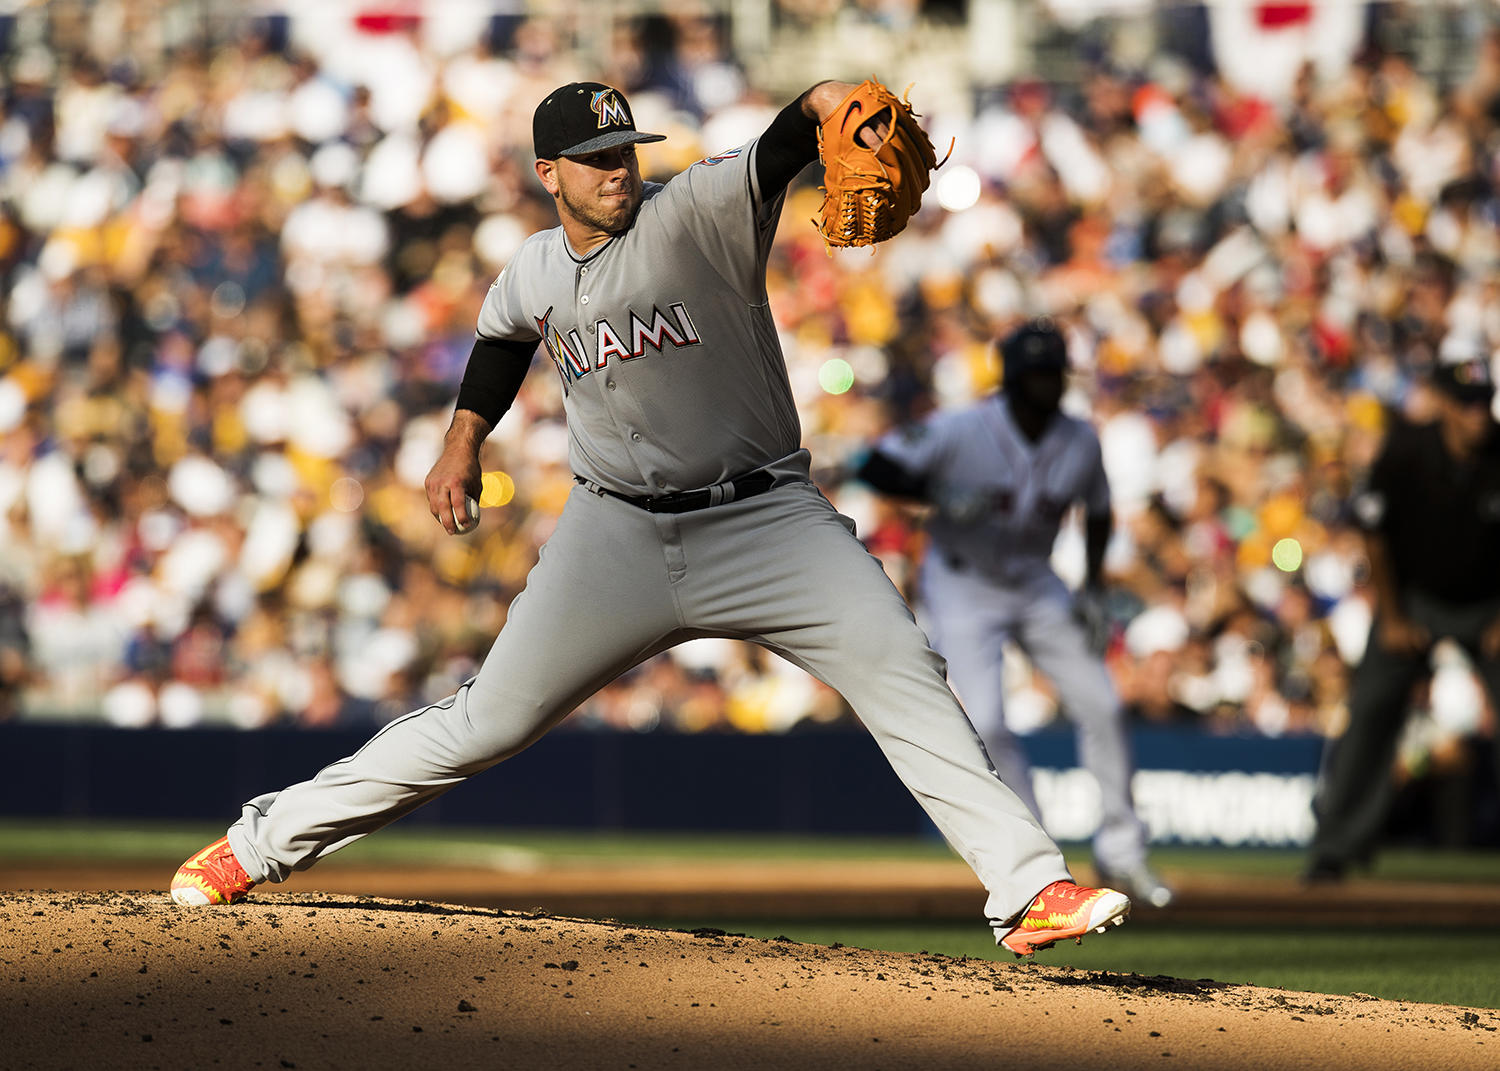 National League All- Star Jose Fernandez of the Miami Marlins pitches during the 87th Annual MLB All-Star Game at Petco Park on July 12, 2016 in San Diego, California. (Jean Fruth / National Baseball Hall of Fame)